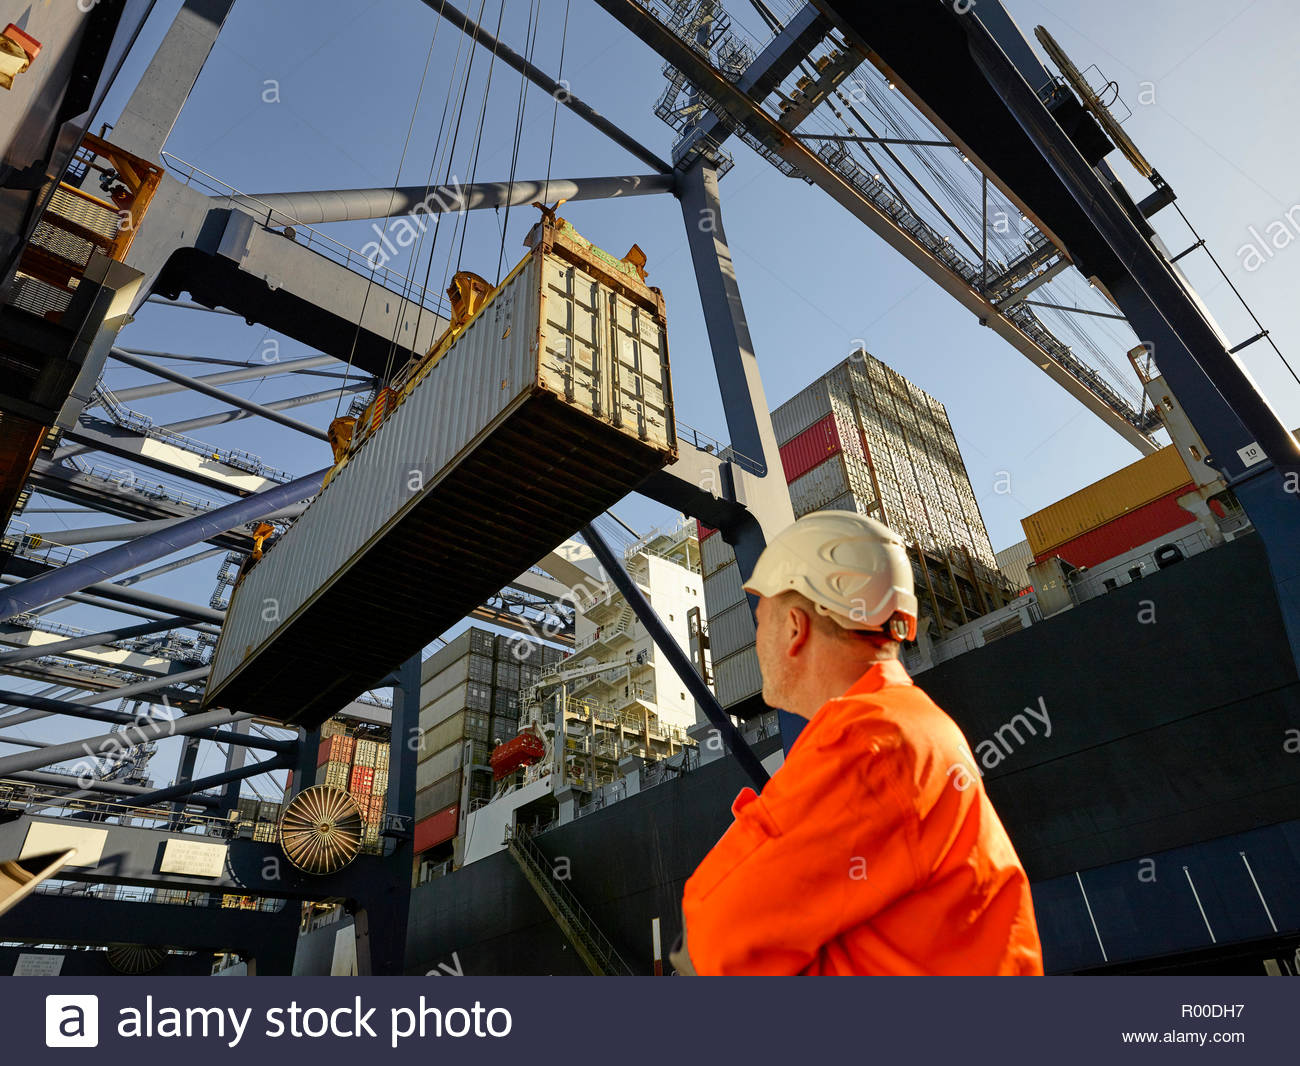 Dock worker watching cargo container being unloaded at Port of Felixstowe, England Stock Photo